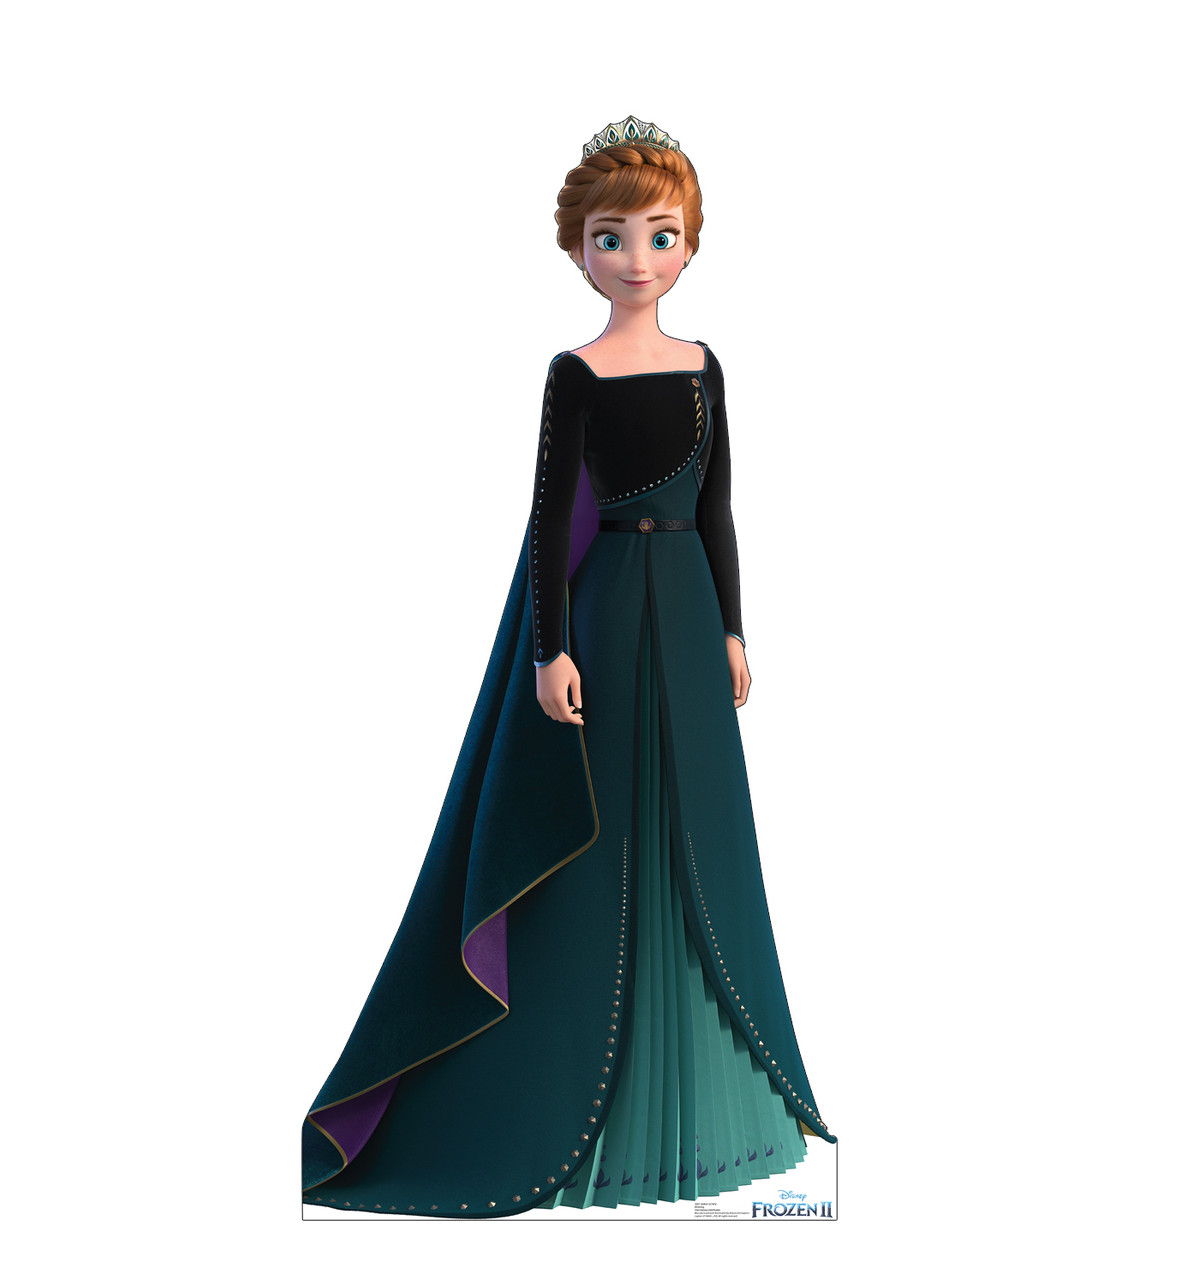 Life-size cardboard standee of Anna Epilogue Gown from Disney's Frozen 2.